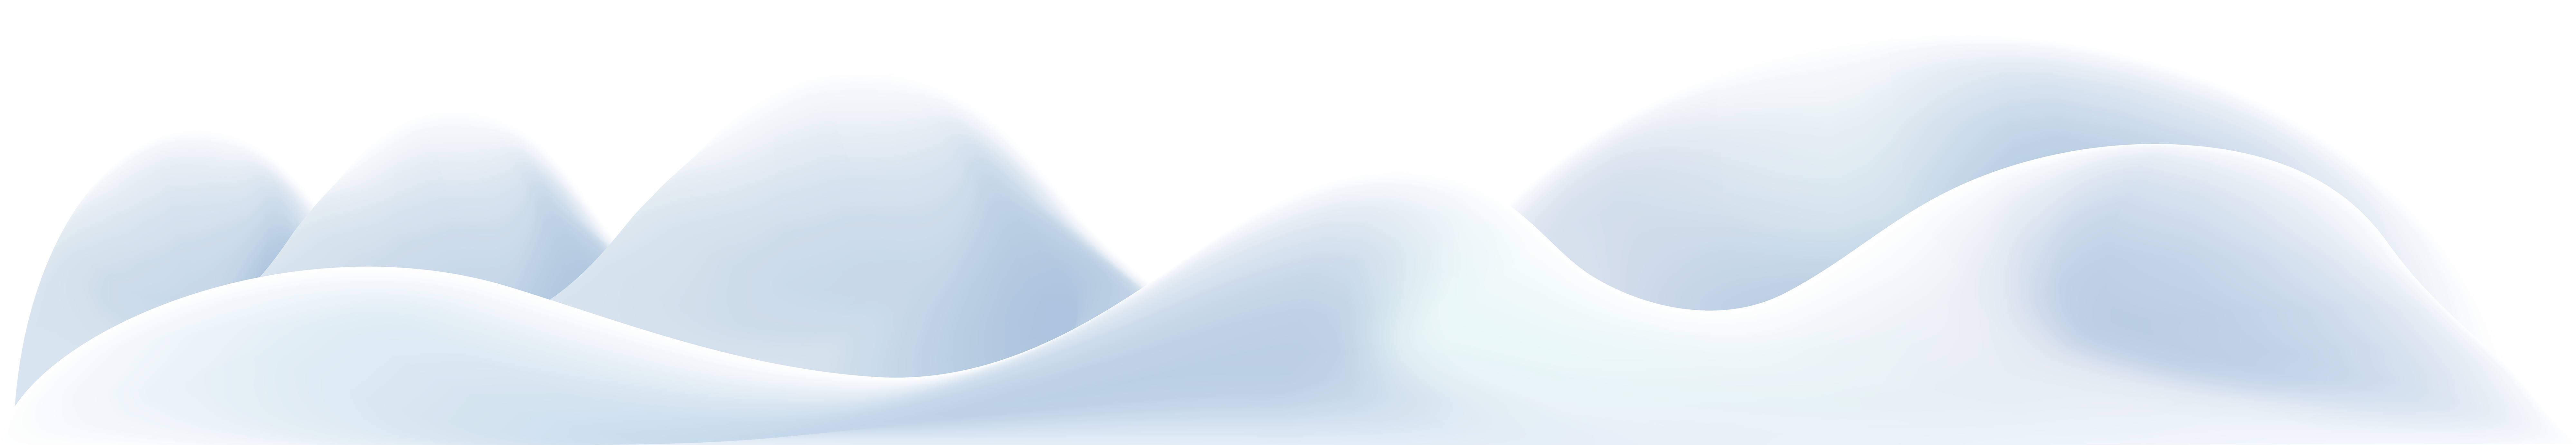 Clipart snow light snow. Blue ground png clip